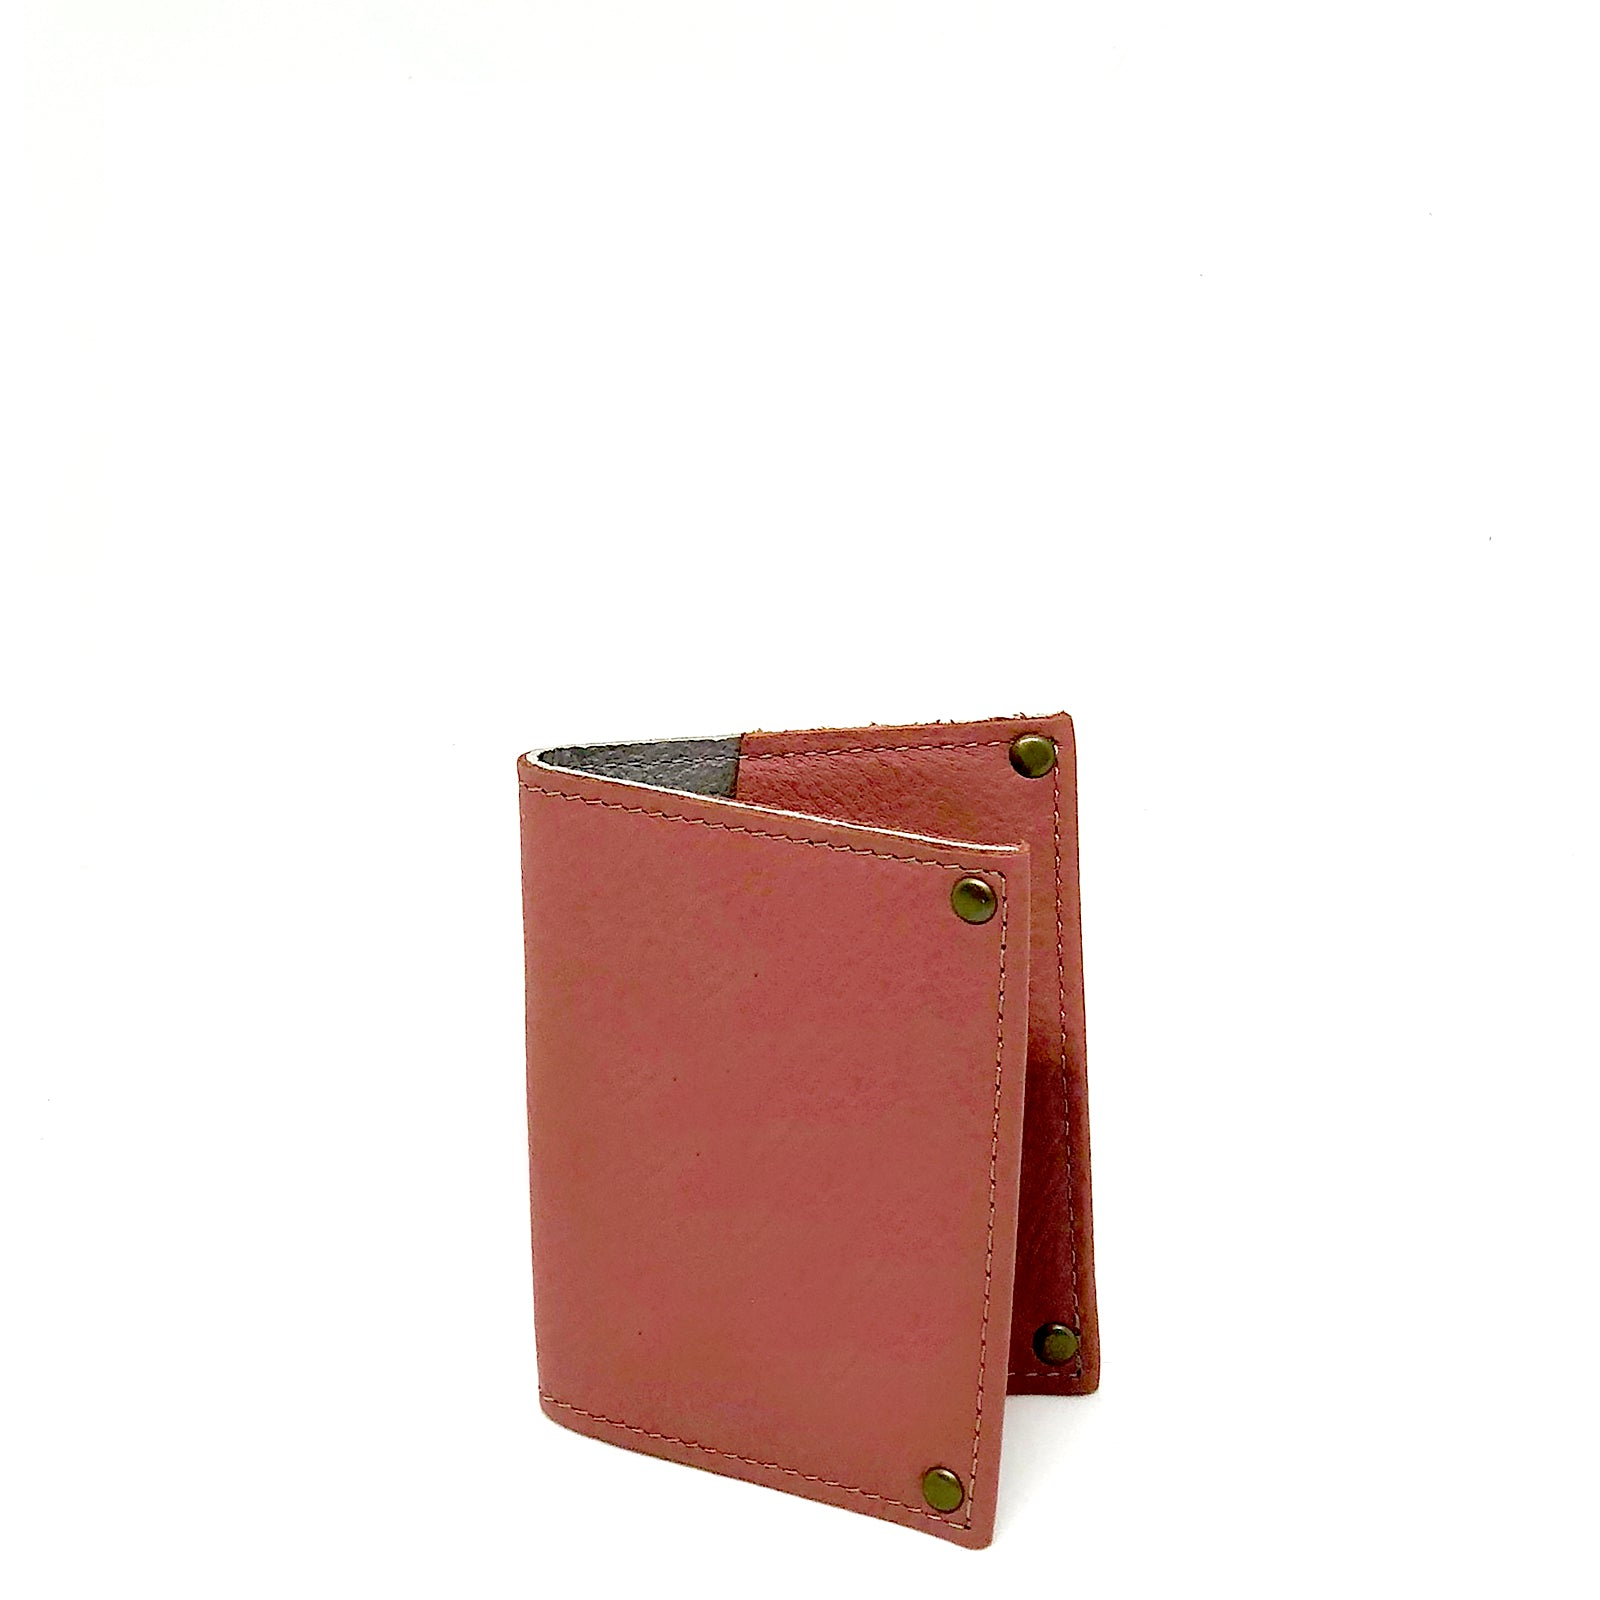 Daye Mini Wallet - Mai Tai - Brynn Capella, Mini Wallet